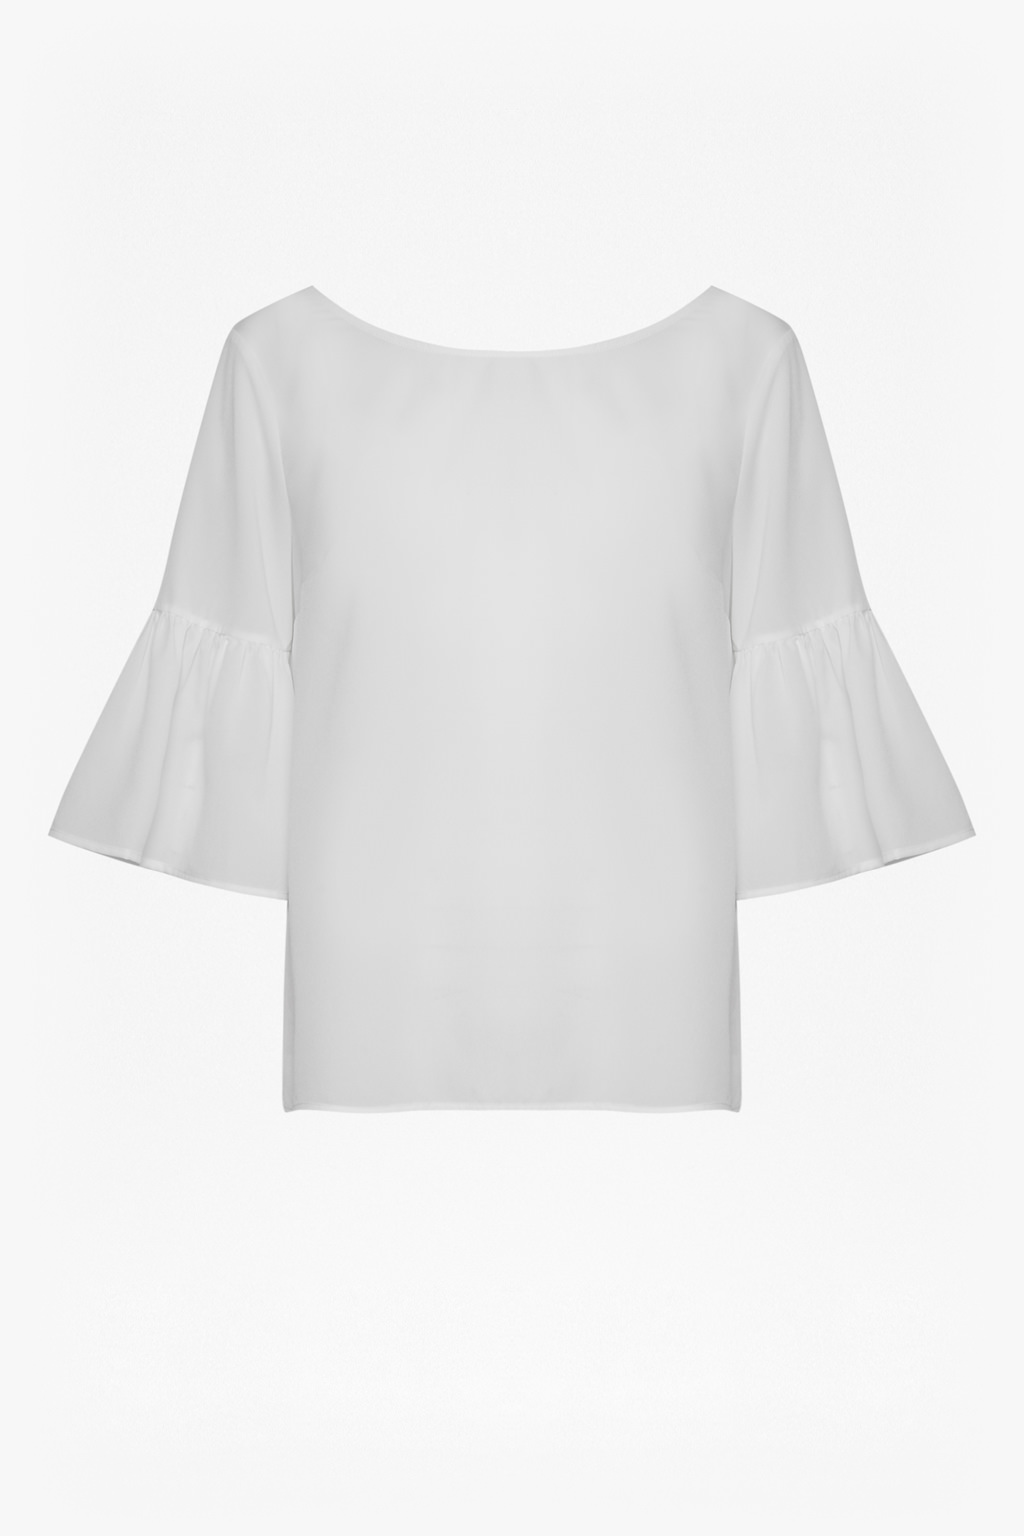 French Connection Classic Crepe Bell Sleeve Strap Back Top Clearance For Nice vpTSS